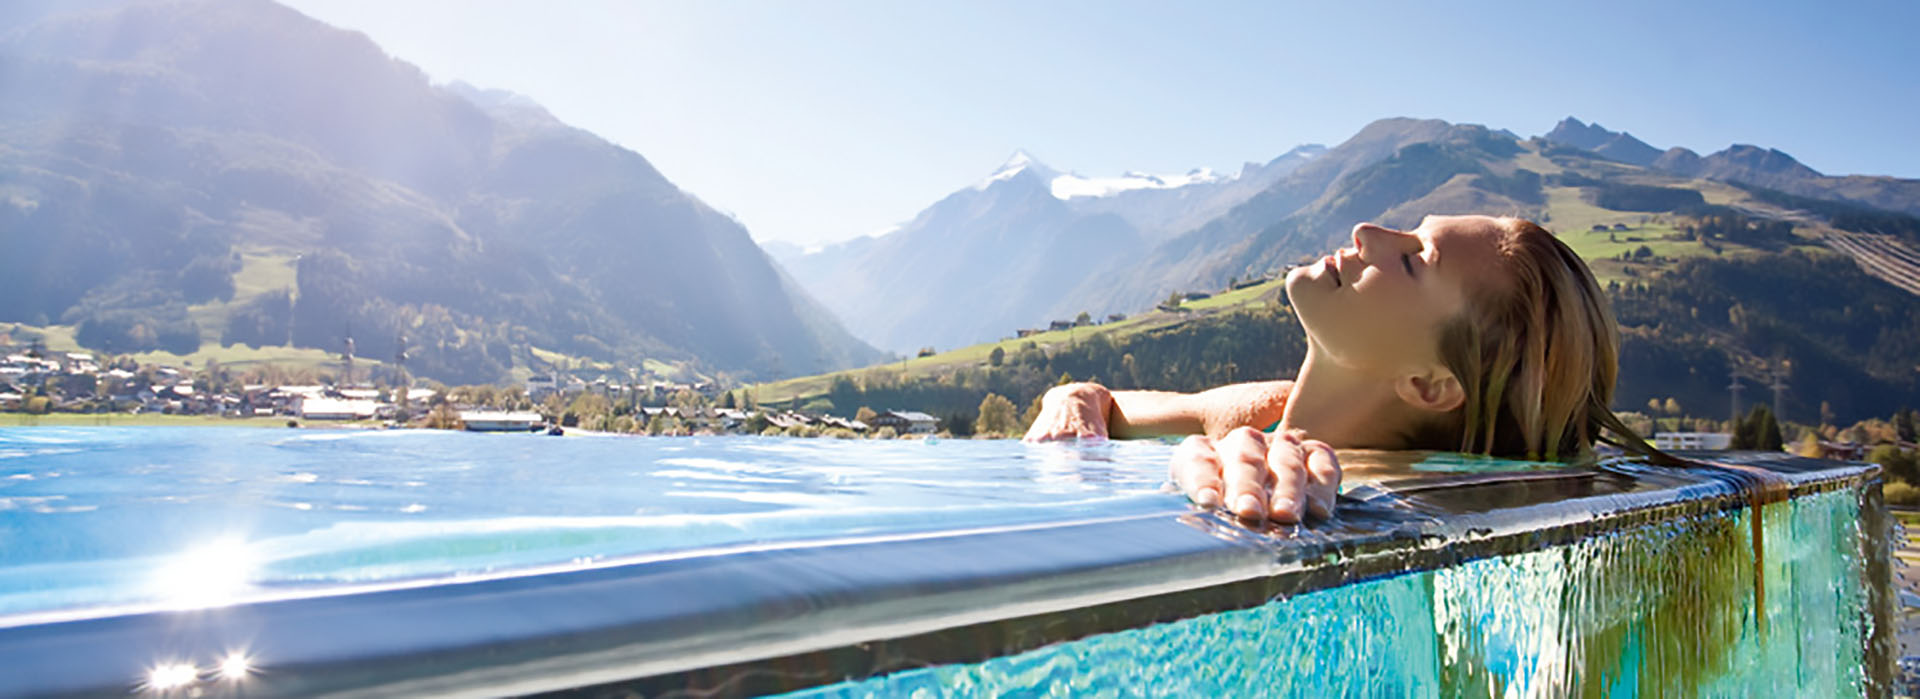 Tauern Spa Pool